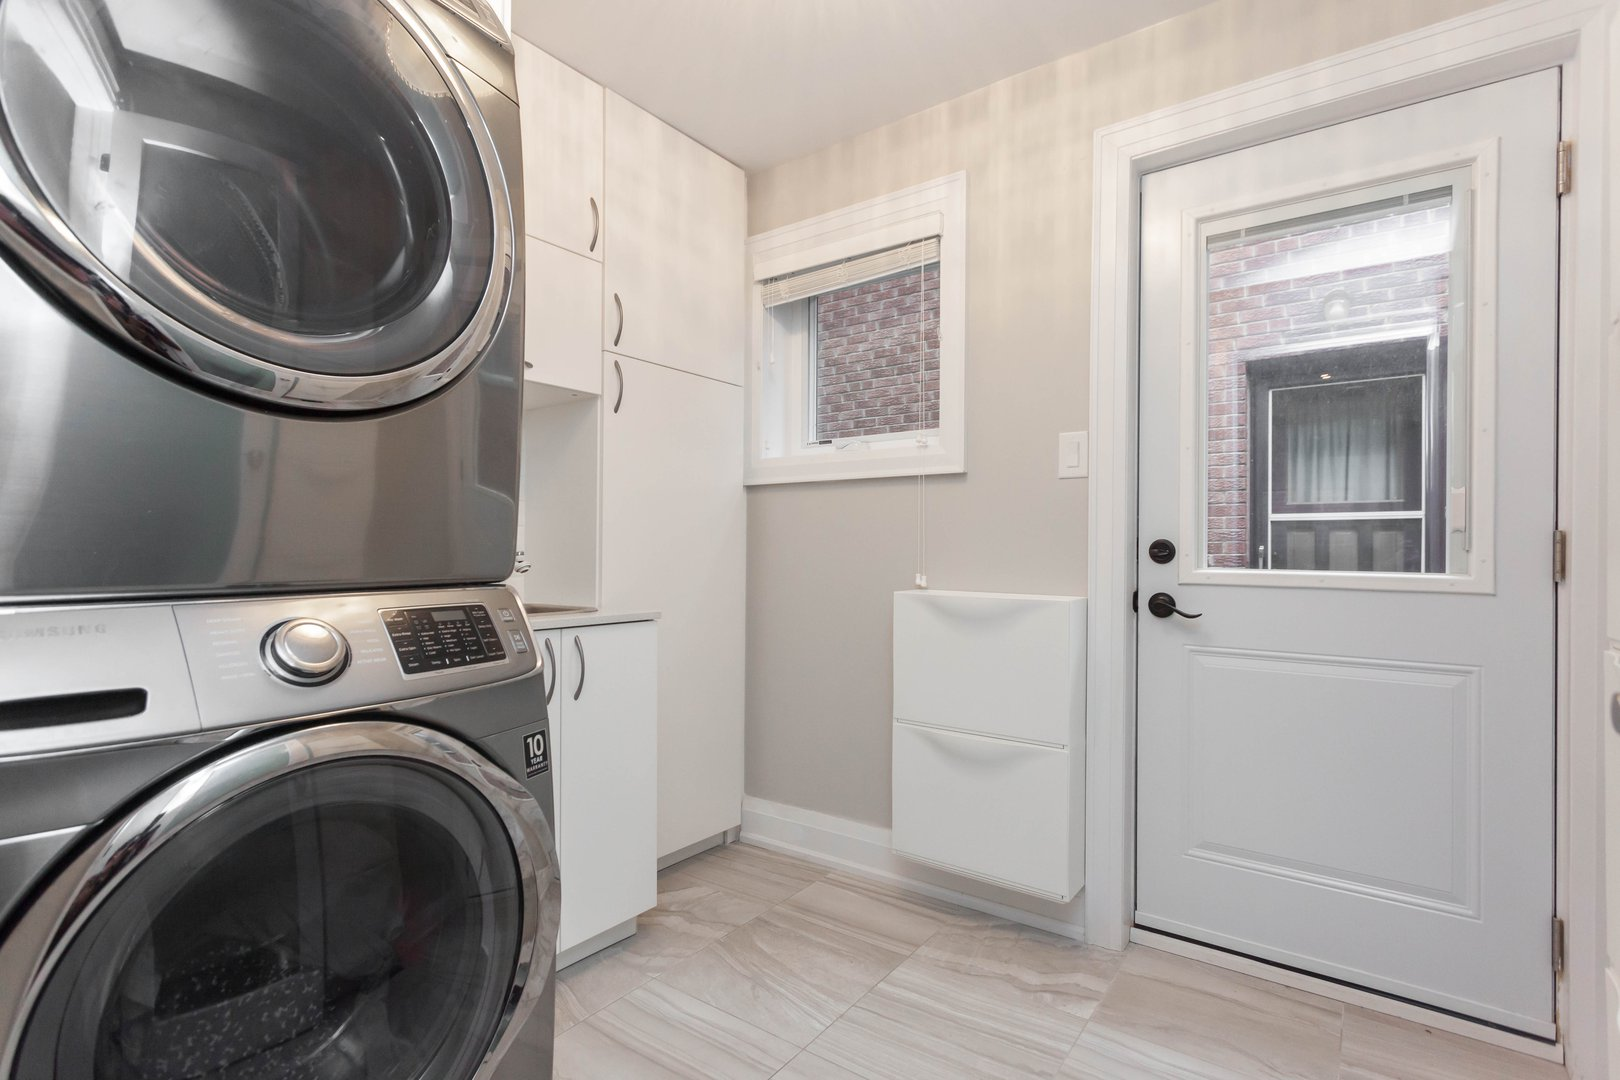 House for rent at 84 Laurel Avenue, Etobicoke, ON. This is the laundry room with tile floor.